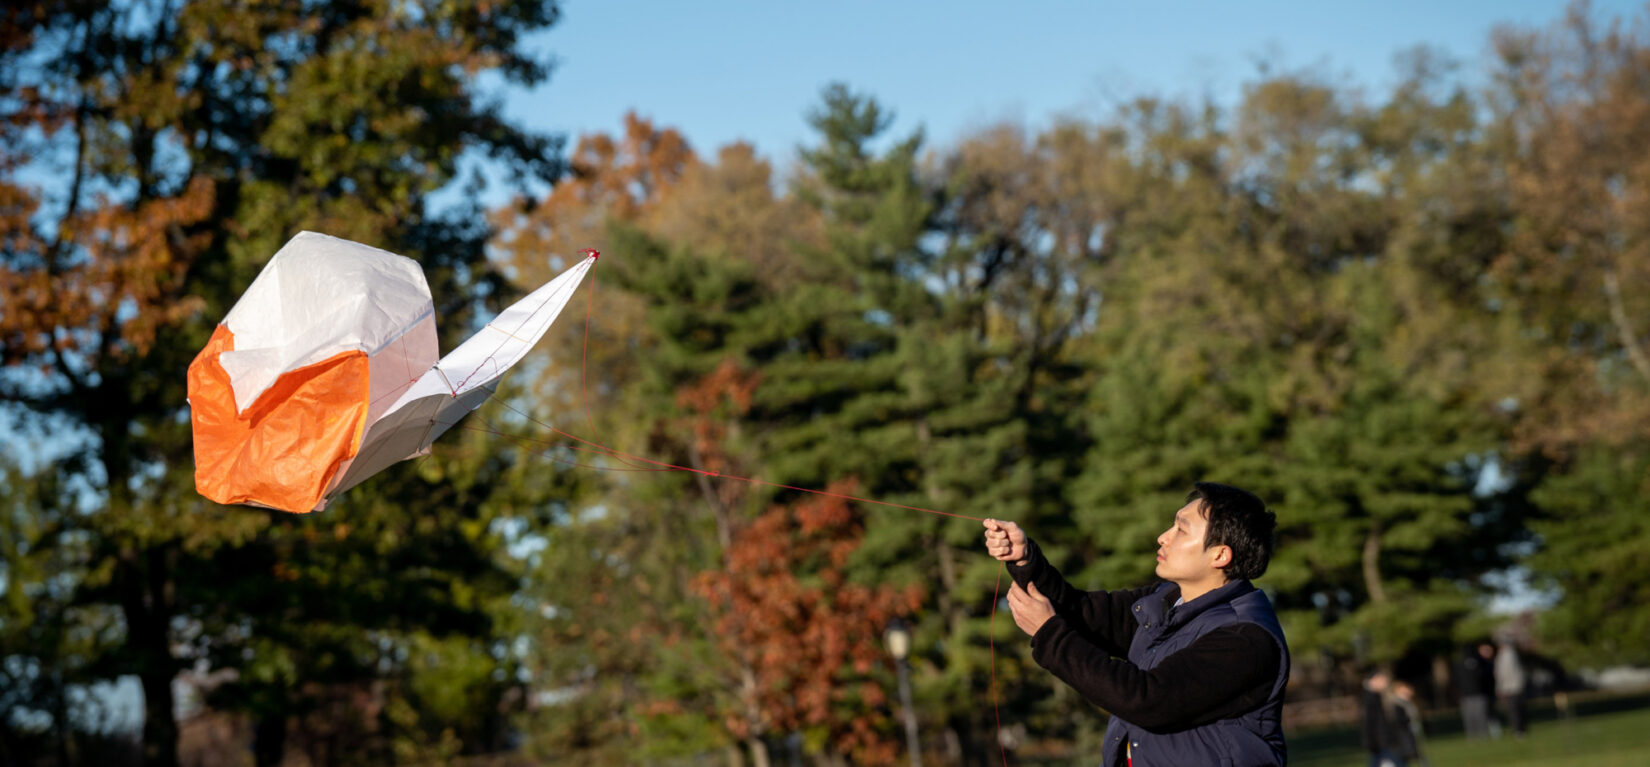 A visitor cajoles his kite into the wind on an autumnal day in the Park